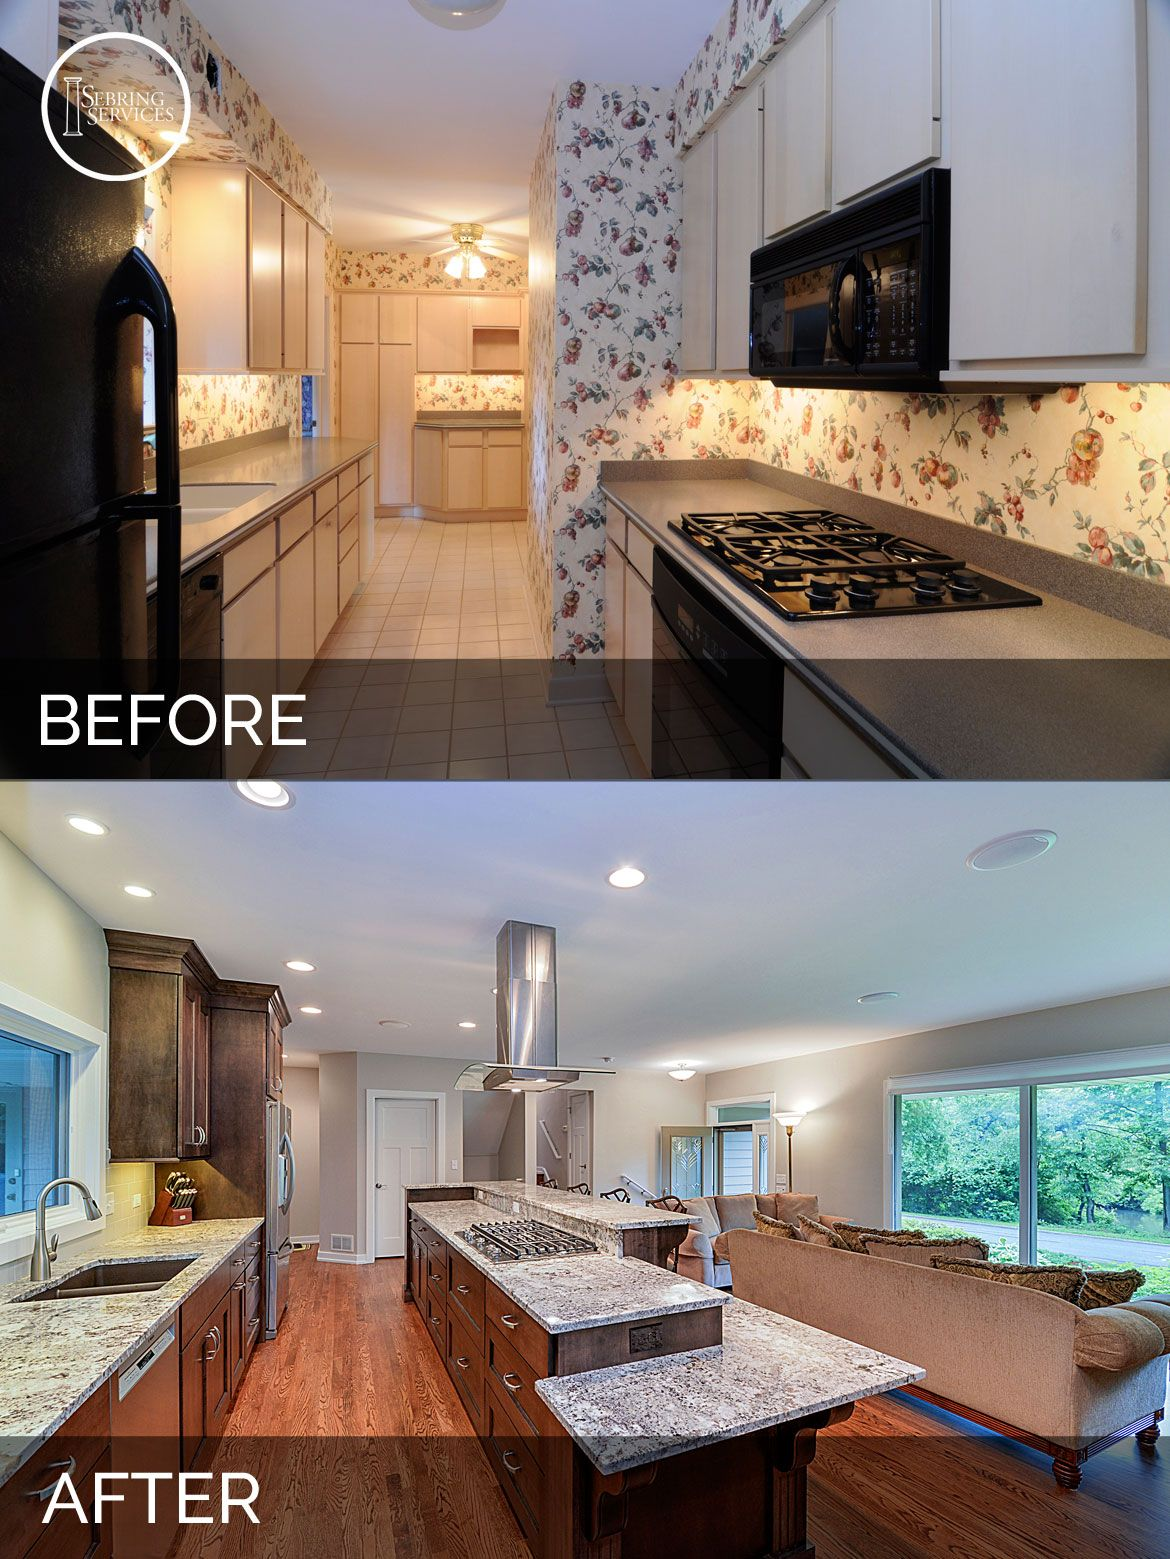 Dan & Ann's Kitchen Before & After Pictures In 2019